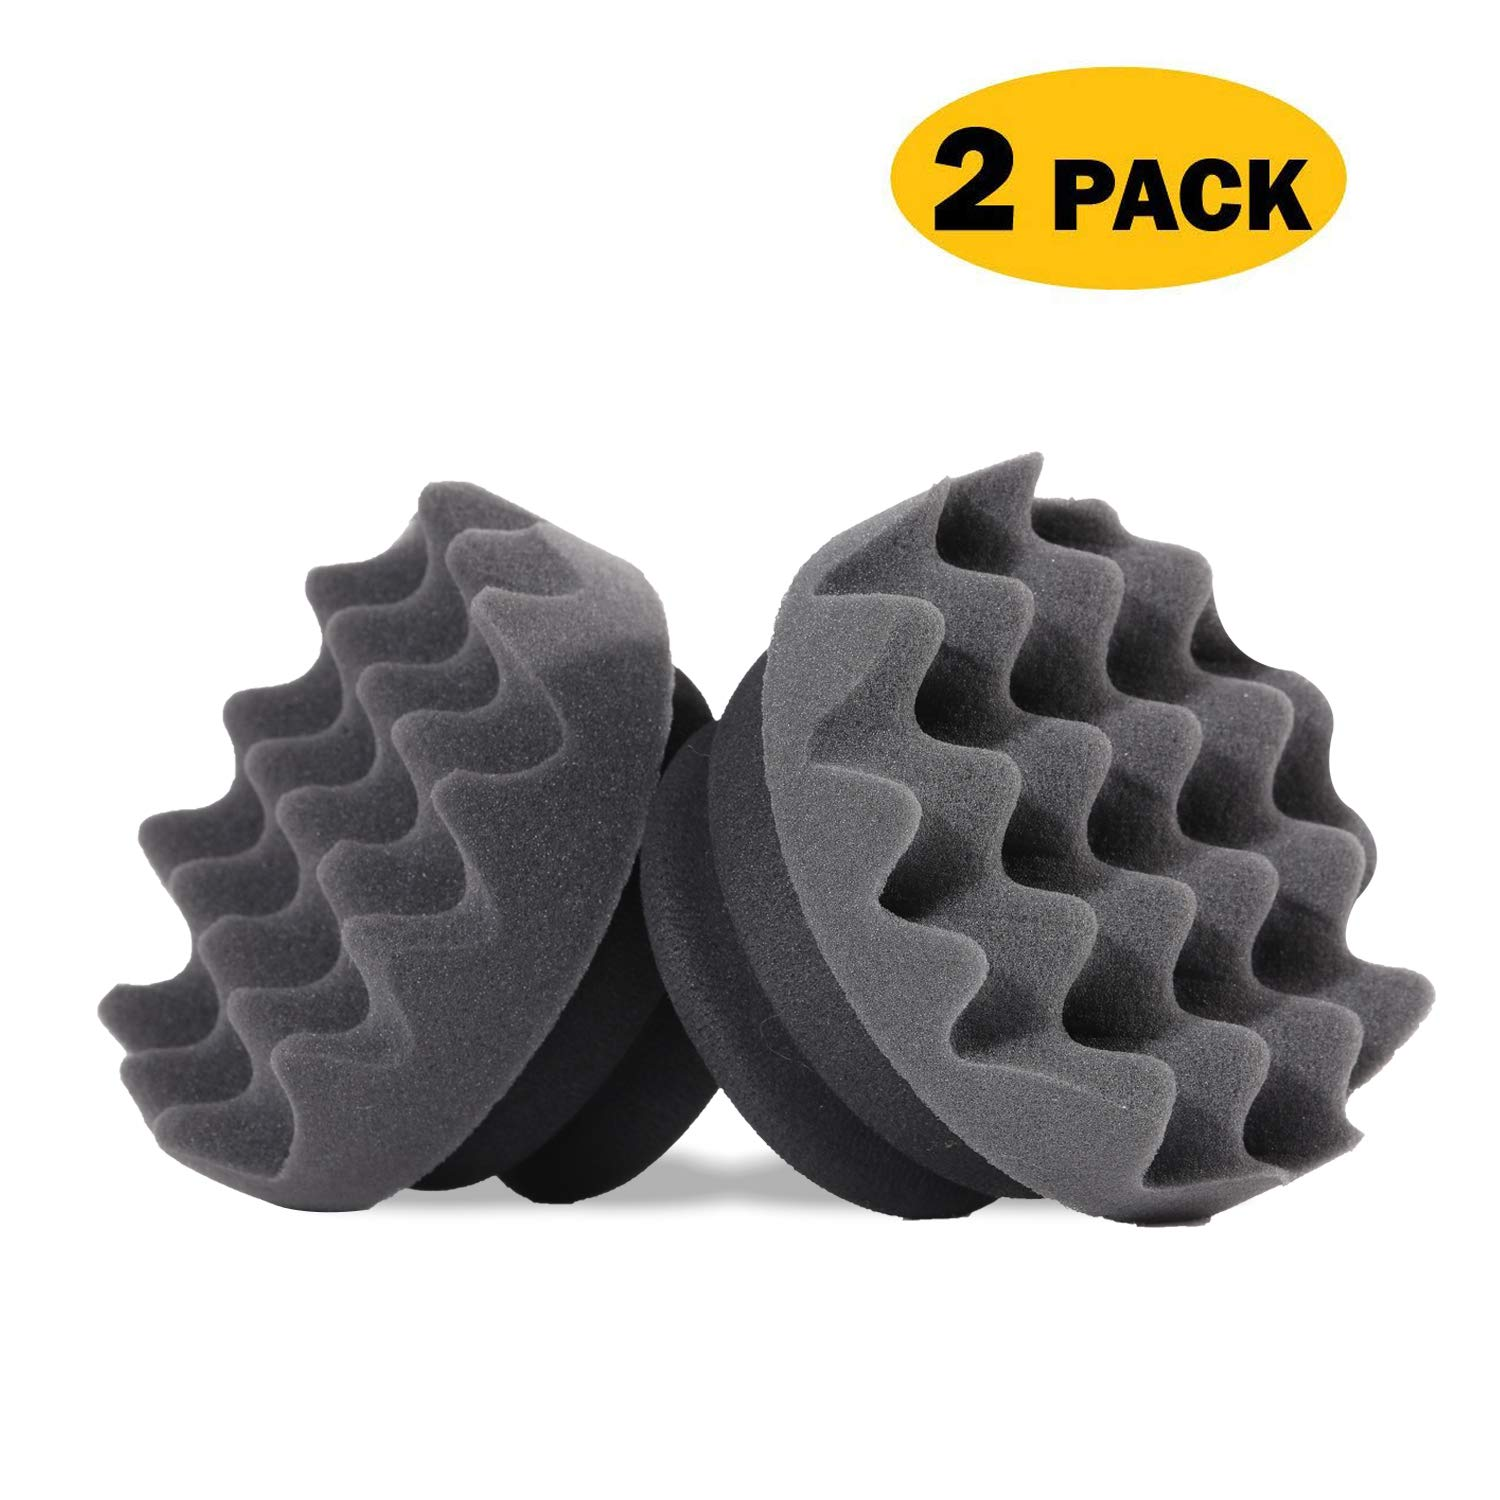 BOKA Pro Tire Dressing Applicator 2-Pack Tire Shine Applicator- Ergonomic Round Grip & Deeper Wave Design to Reach Trim Makes Detailing Tires Easier and Cleaner - Durable, Washable, and Reusable